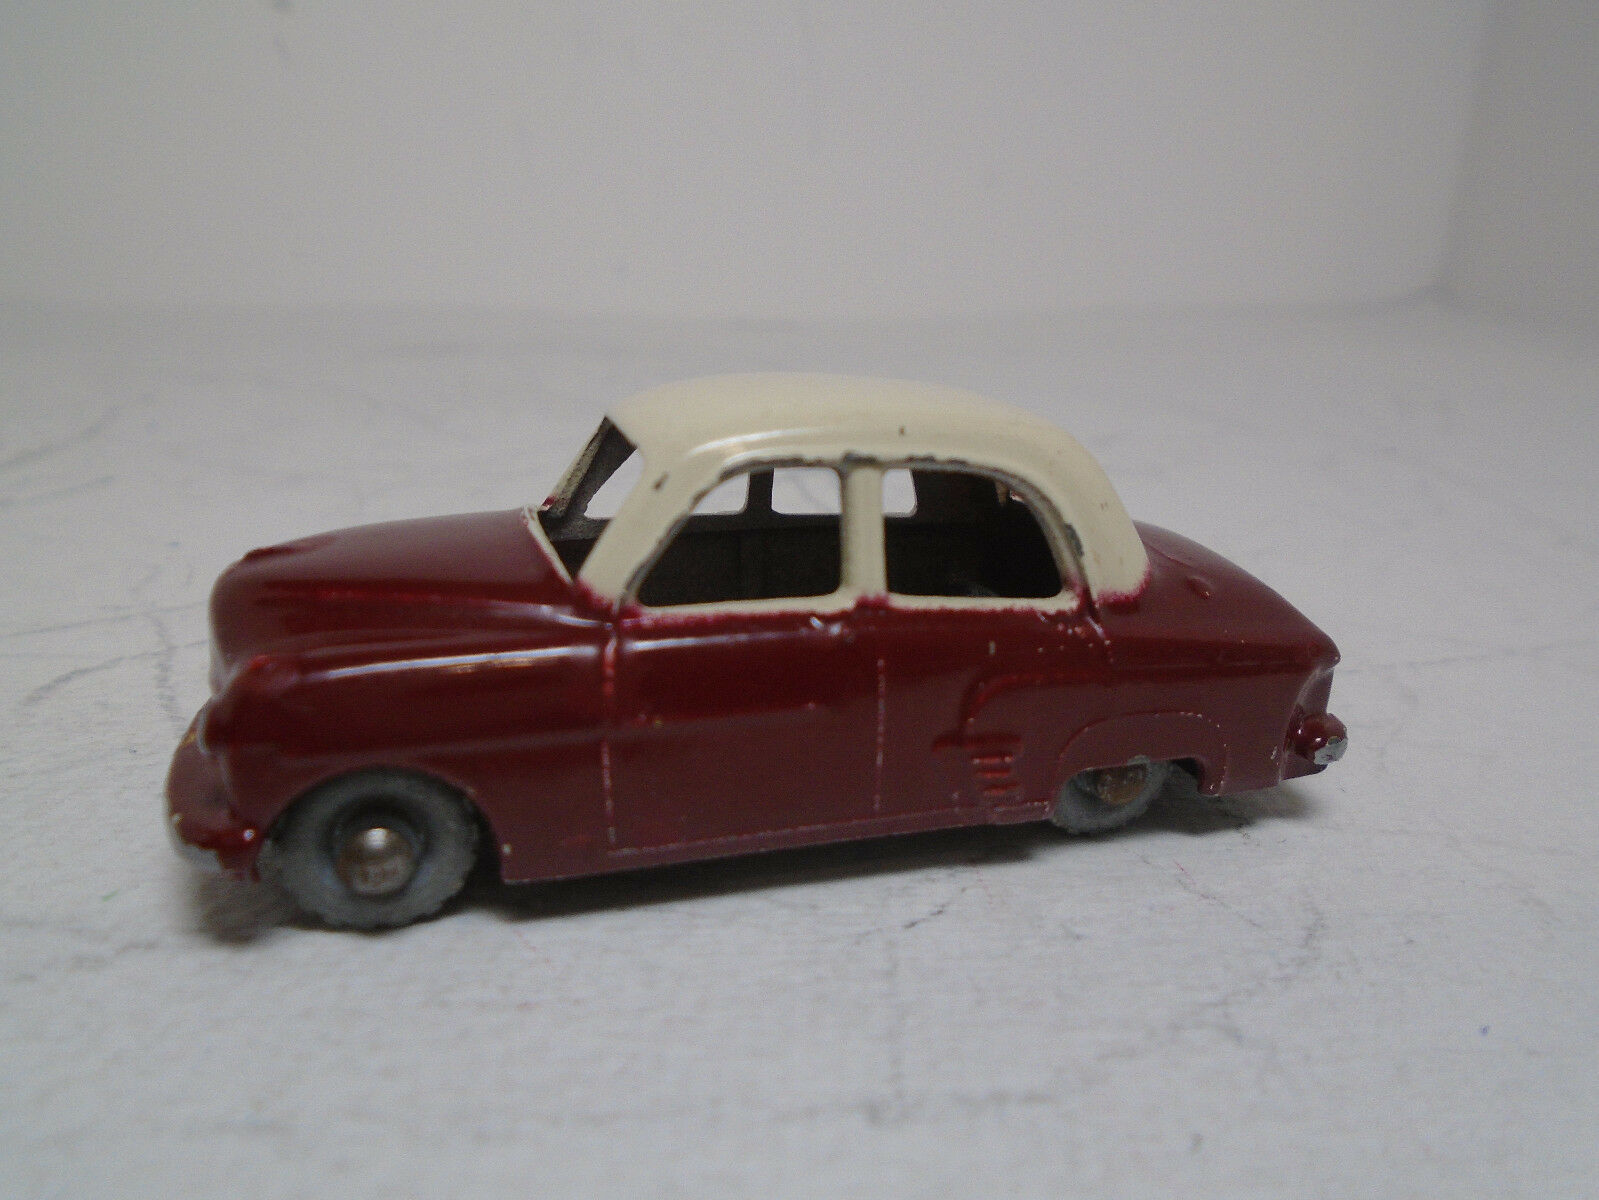 ORIGINAL MOKO MATCHBOX A-1 VAUXHALL CRESTA  RED CREAM ROOF,GMW, few touch-ups